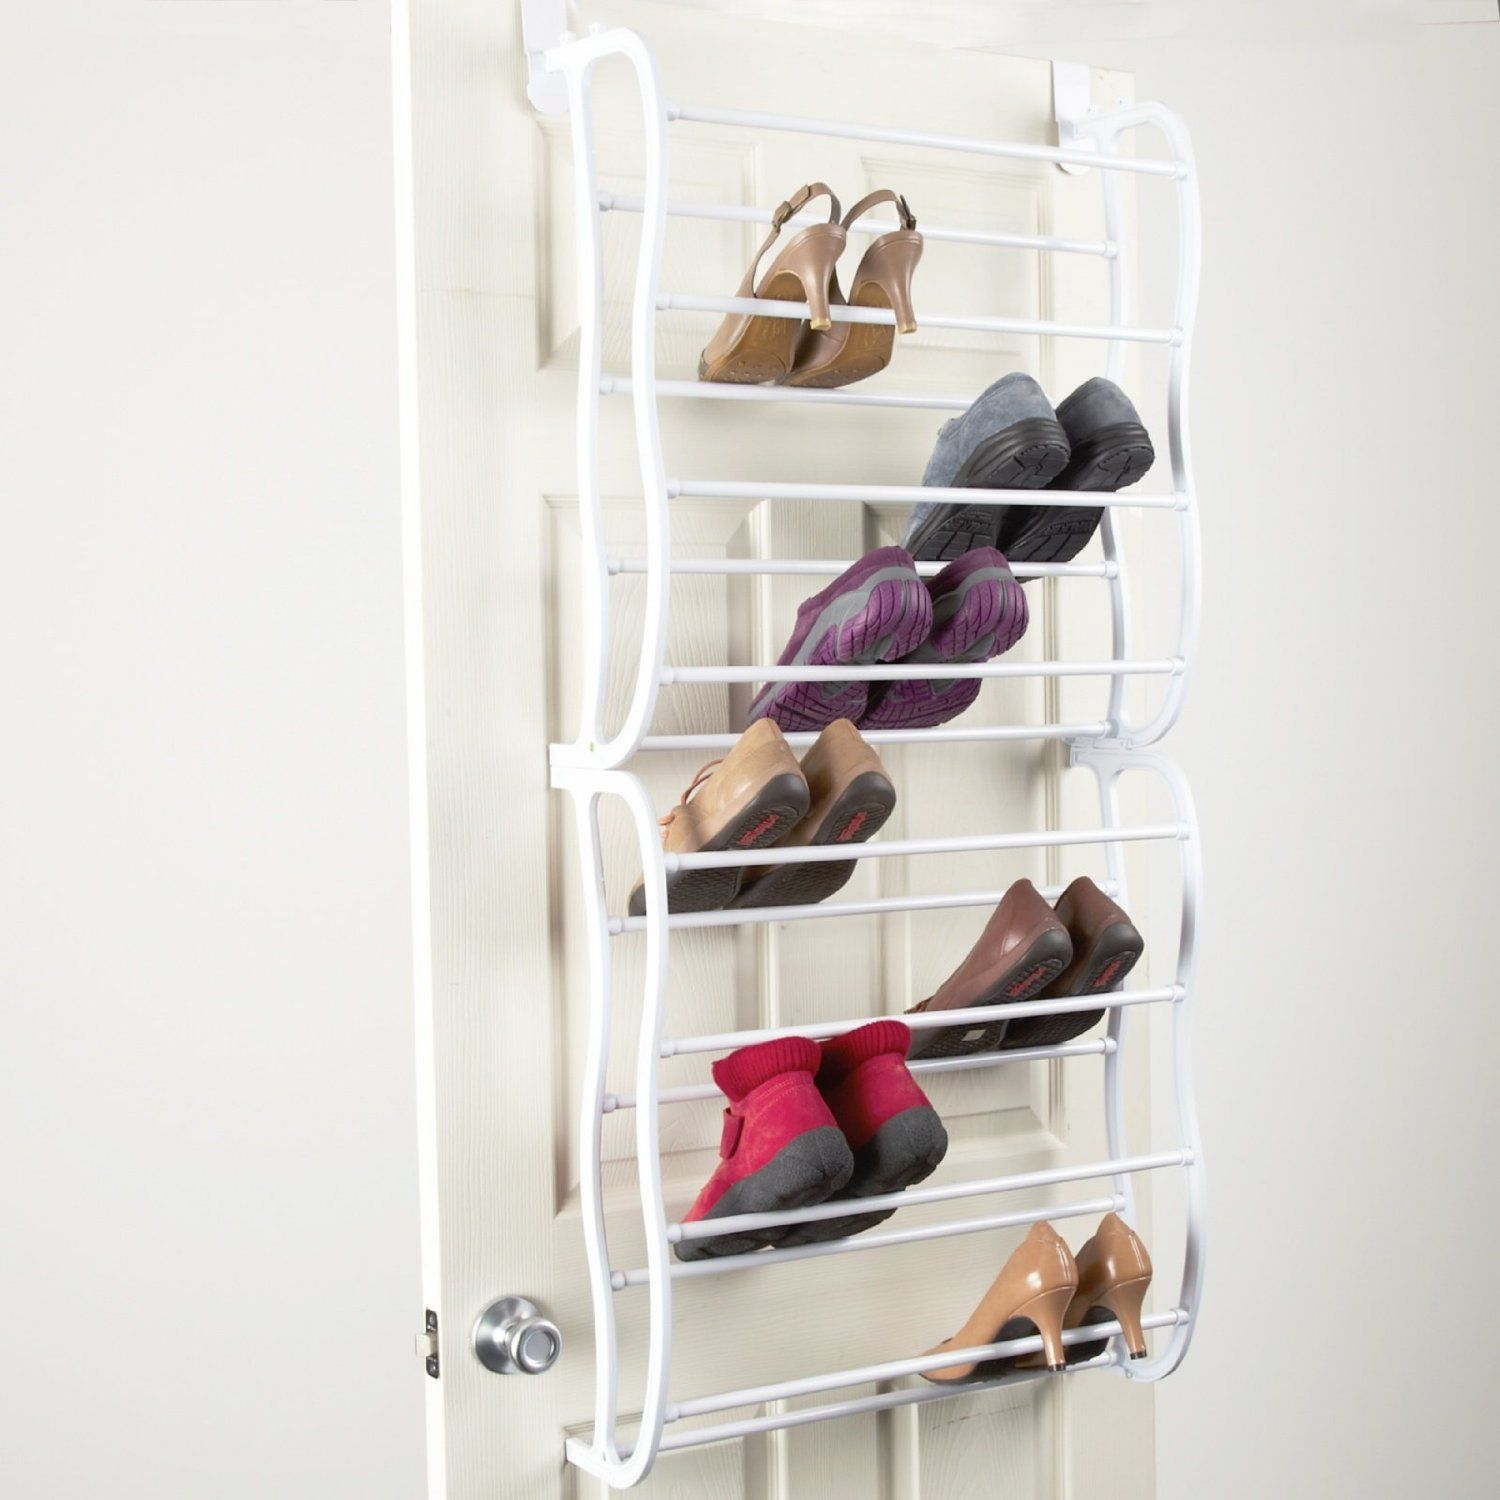 Create A Decent Space With The Shoe Racks For Closets Darbylanefurniture Com In 2020 Wall Mounted Shoe Rack Shoe Rack Closet Diy Shoe Rack